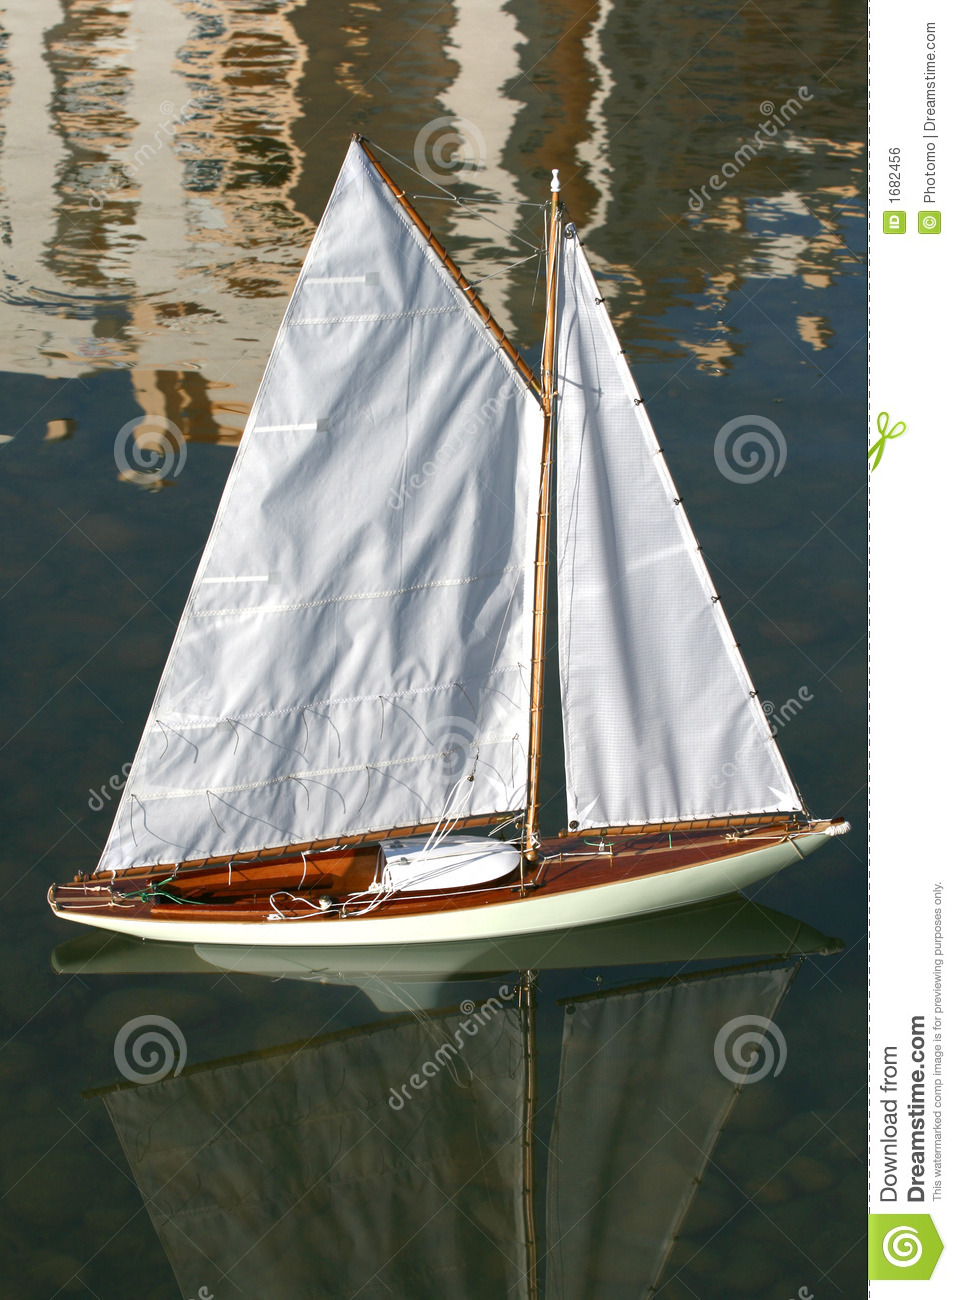 Sailing Model Boat III Royalty Free Stock Image - Image: 1682456